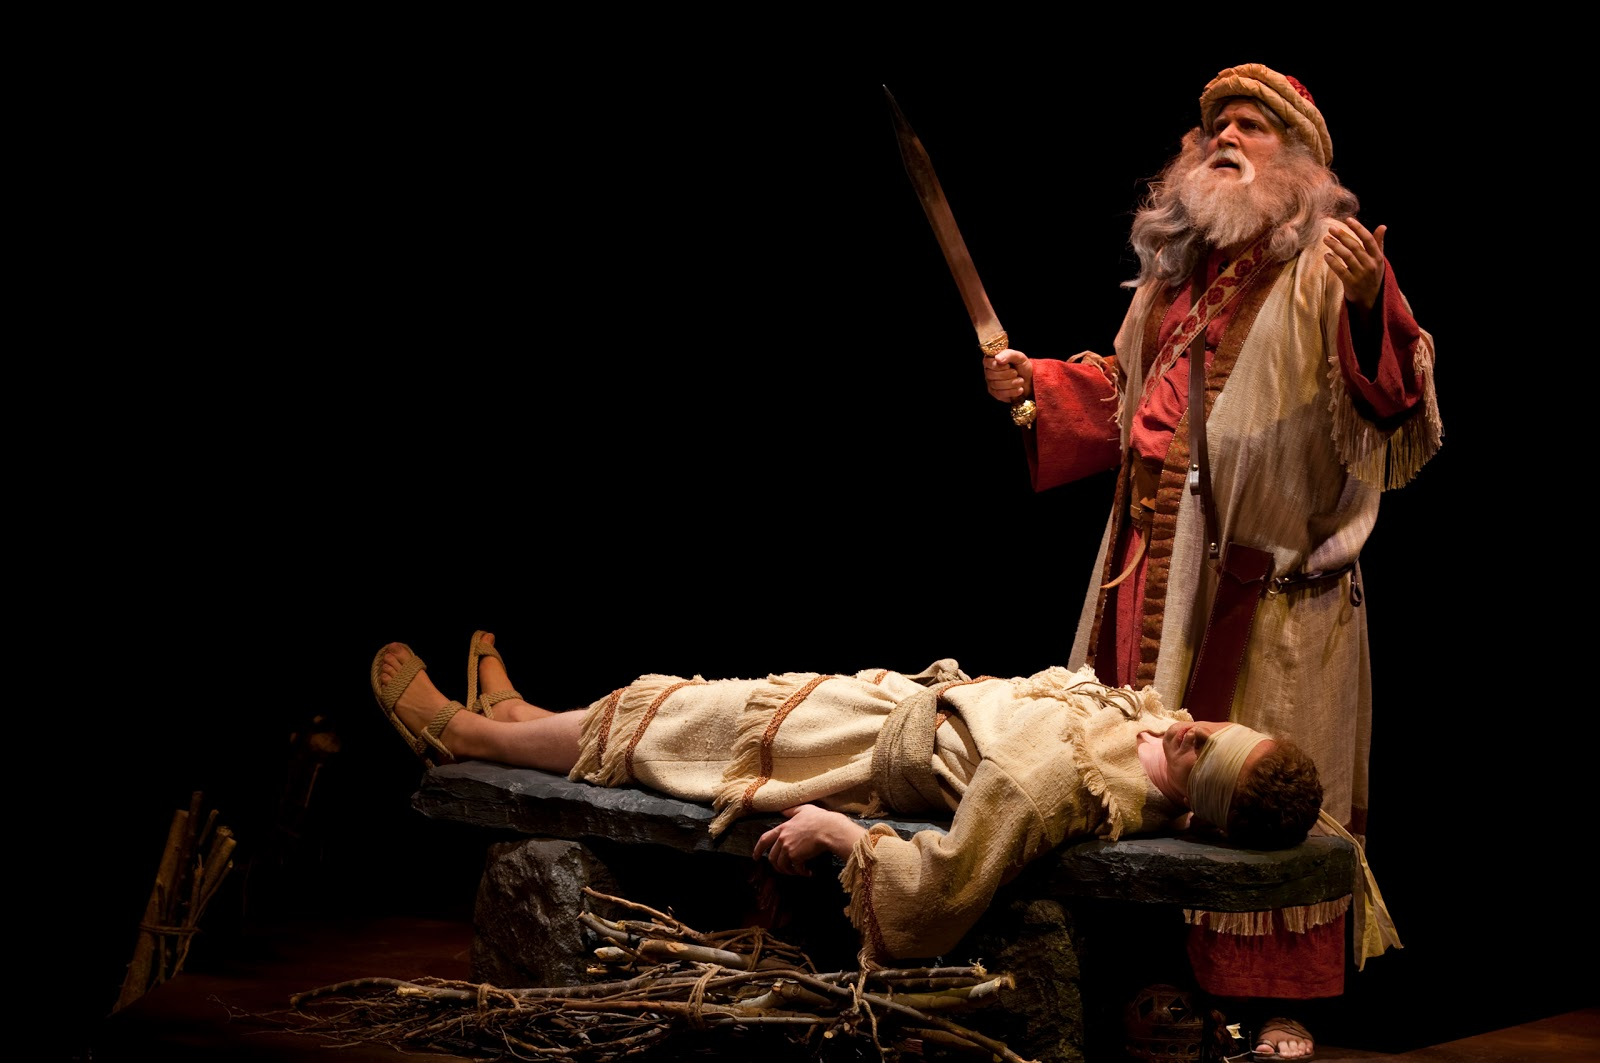 abraham isaac The dramatic story, known in hebrew as the akedah, has perplexed many generations of commentators the binding of isaac, known in hebrew as the akedah, is one of the best known and most troubling stories in the bible in it, god orders abraham to sacrifice his son, isaac, on mount moriah.